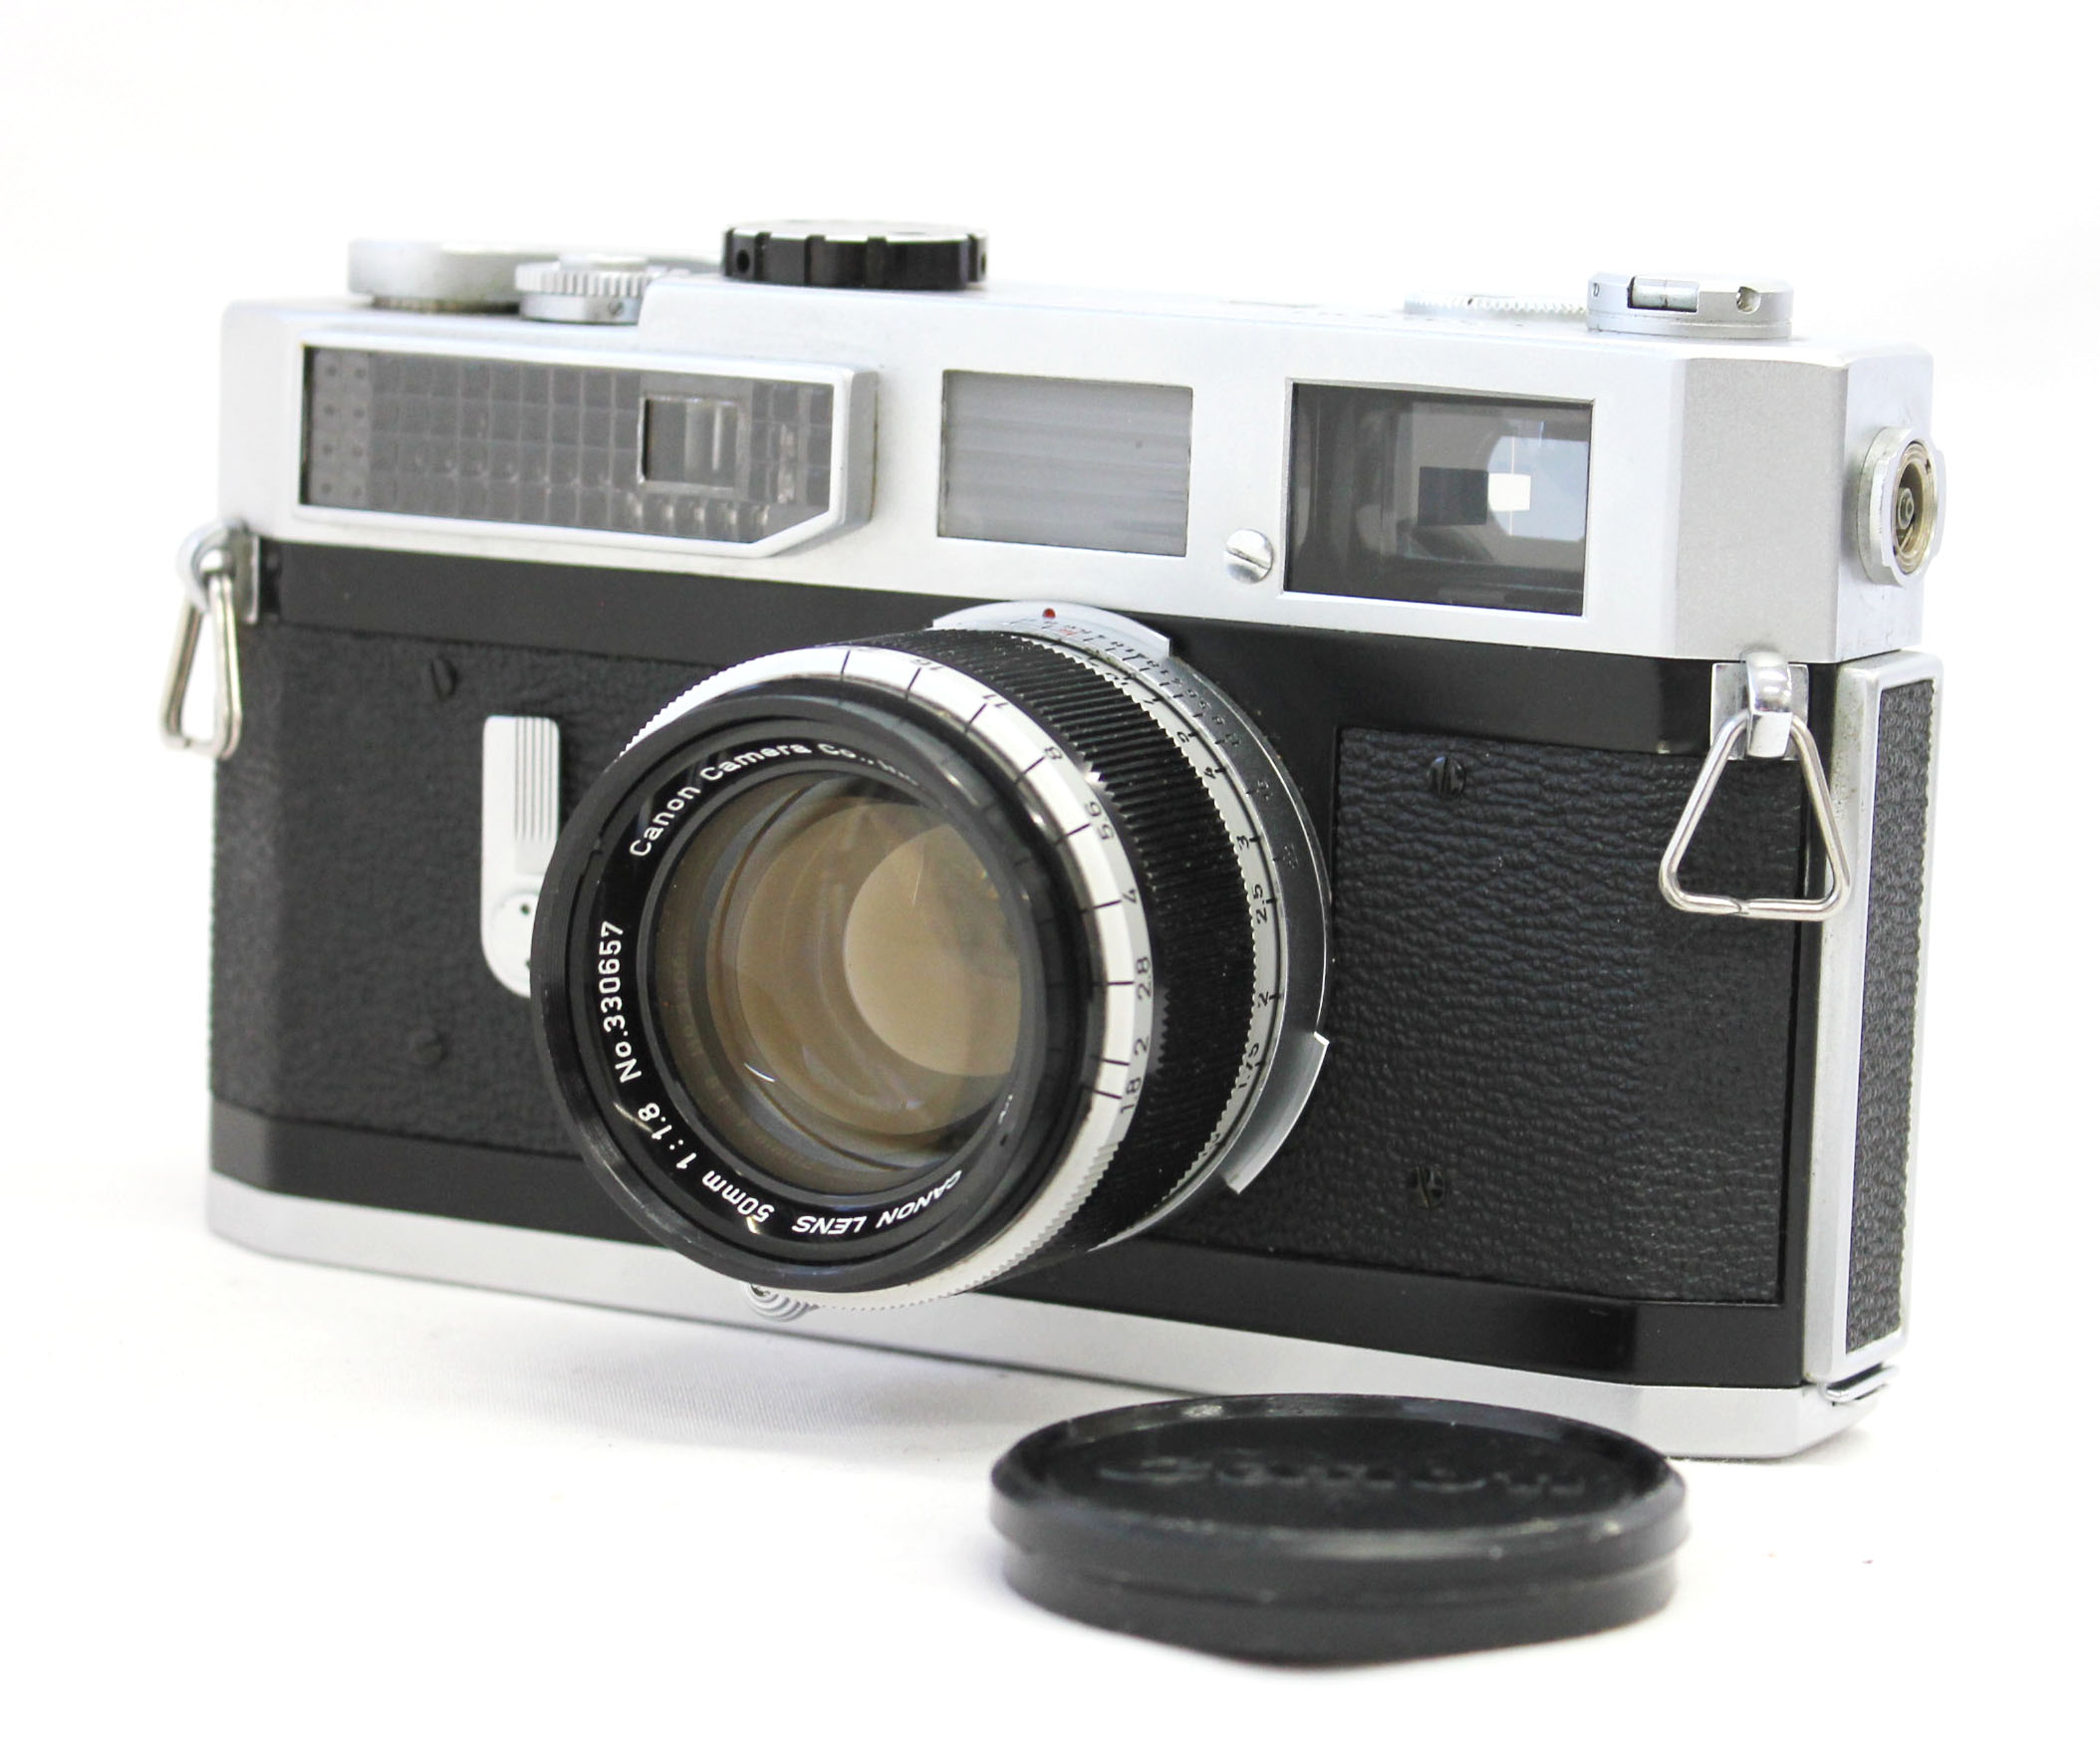 Japan Used Camera Shop | Canon Model 7 Rangefinder Camera with Bonus Lens 50mm F/1.8 Leica L39 Mount from Japan